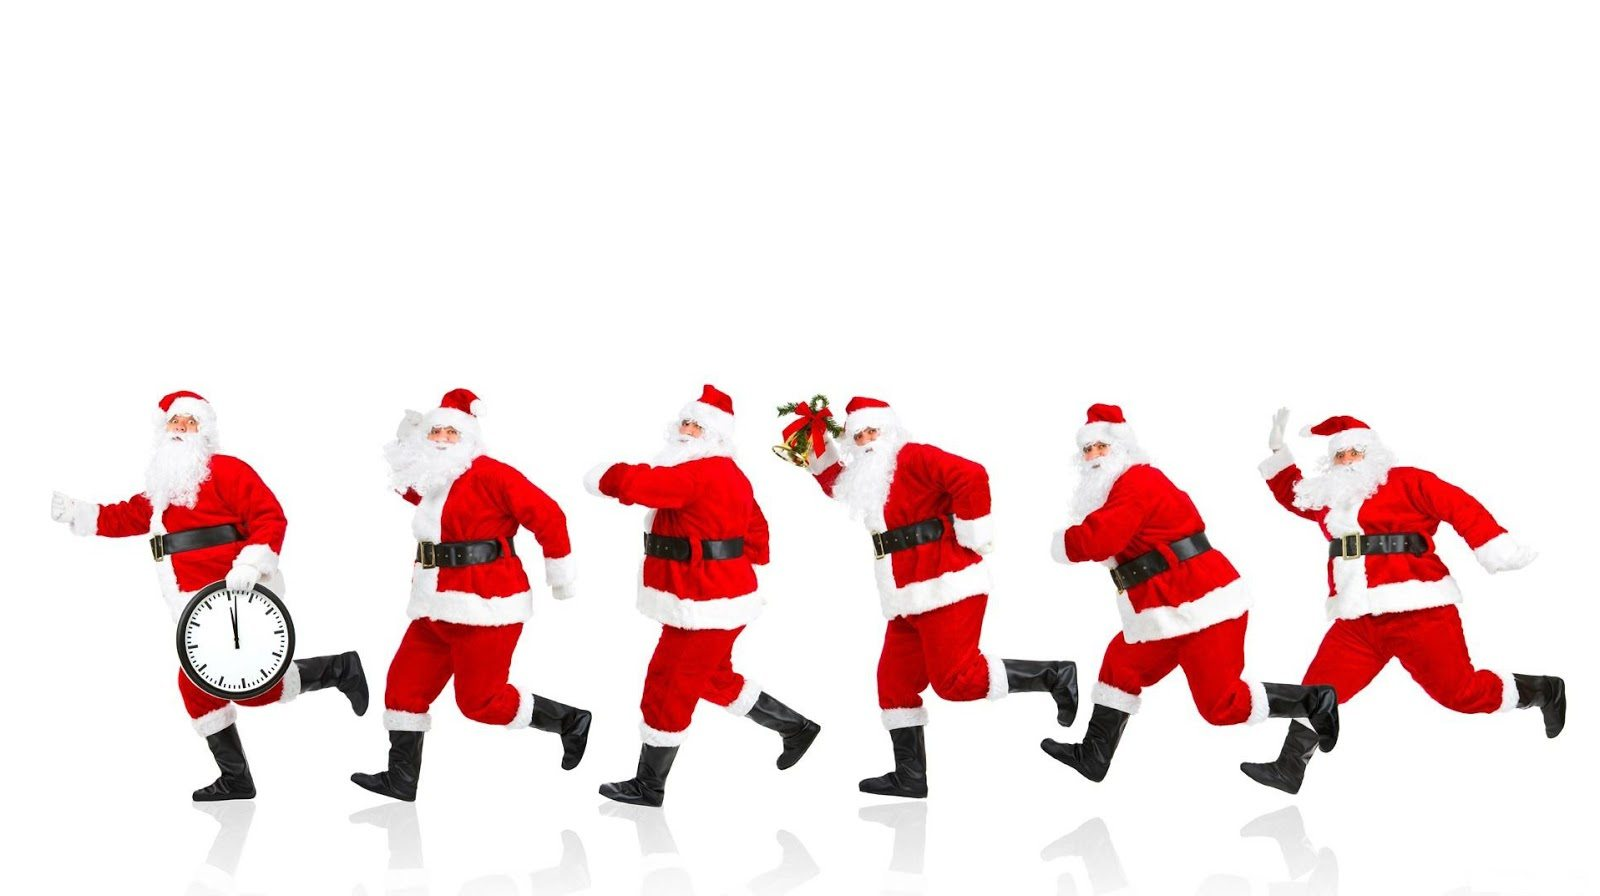 new_year_christmas_santa_claus_five_go_watch_gift_36335_1920x1080